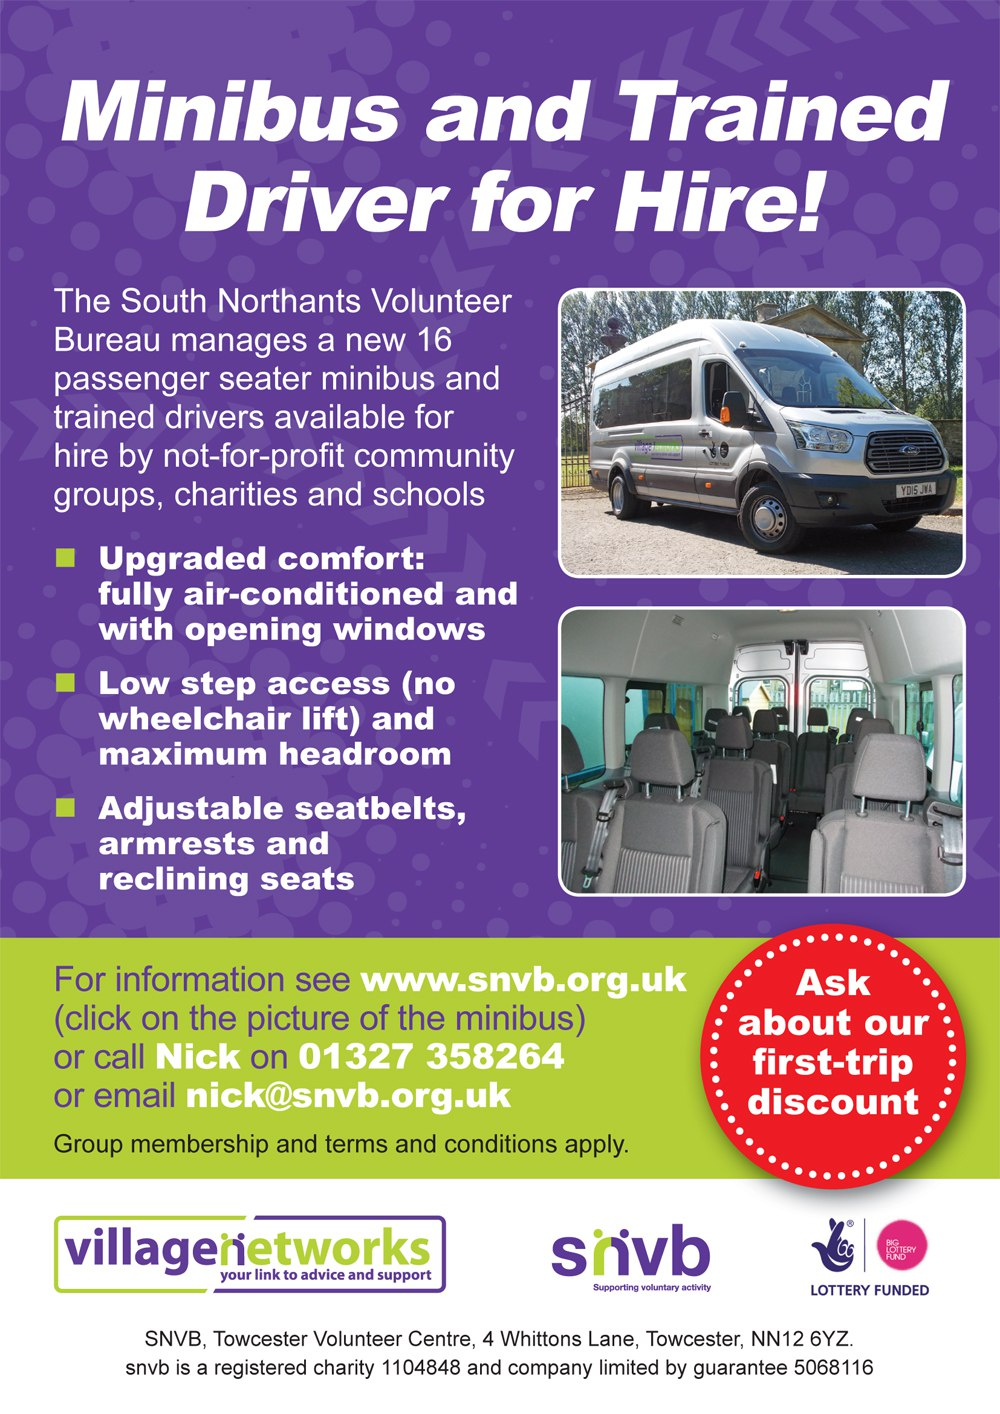 NEW Village_Networks_Minibus_Hhire_2015_A4_poster oct2015 copy (1)